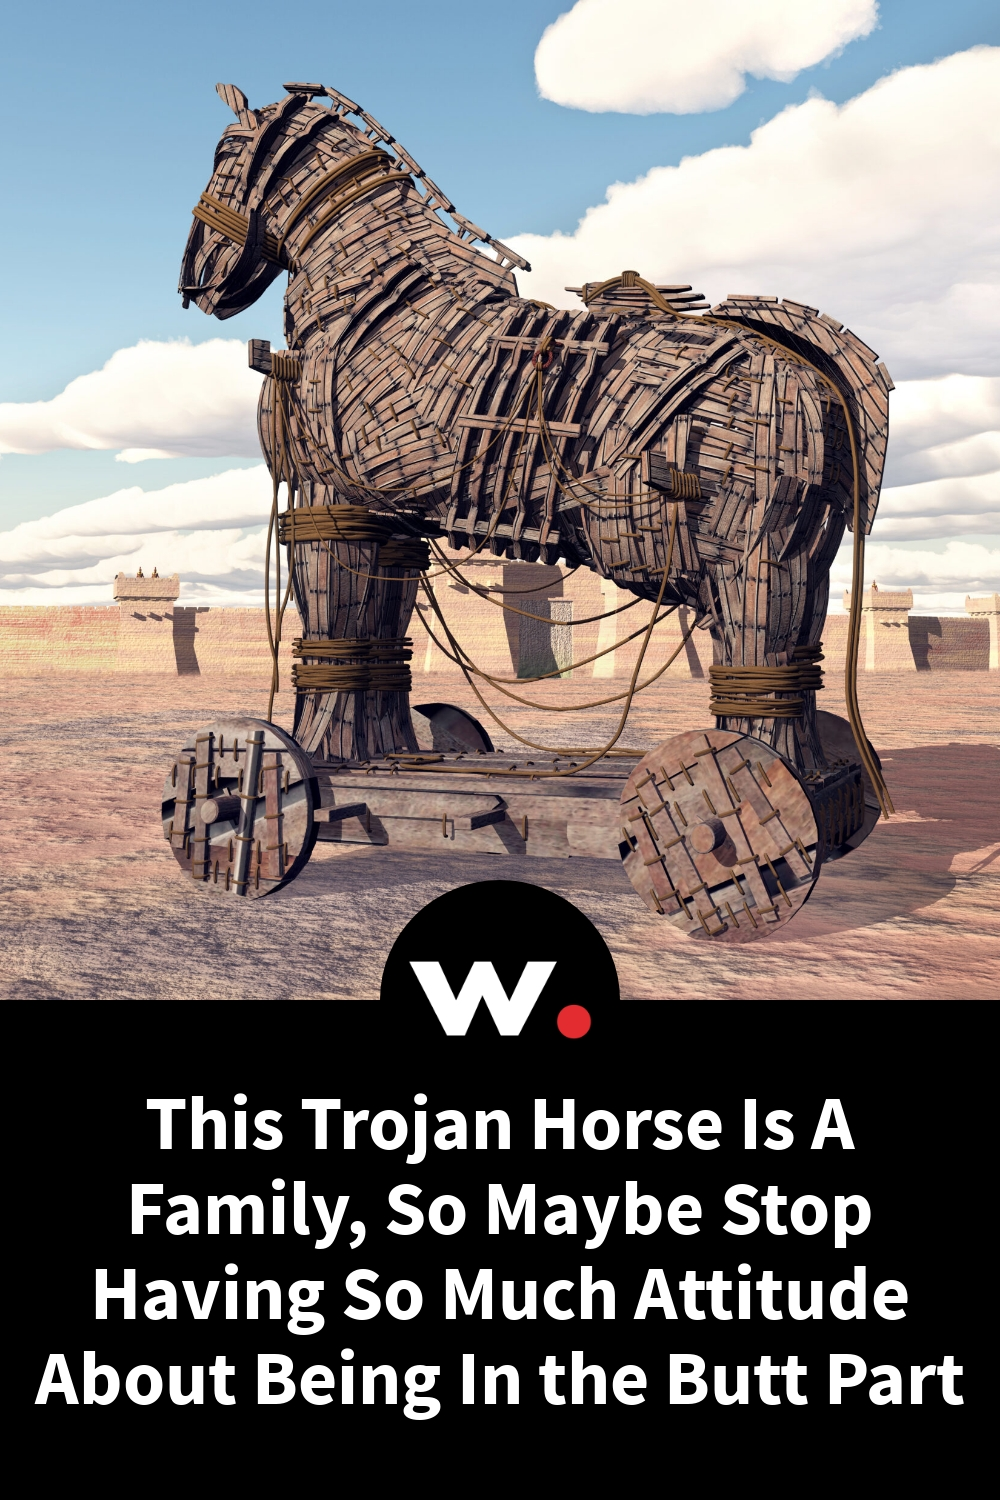 This Trojan Horse Is A Family, So Maybe Stop Having So Much Attitude About Being In the Butt Part